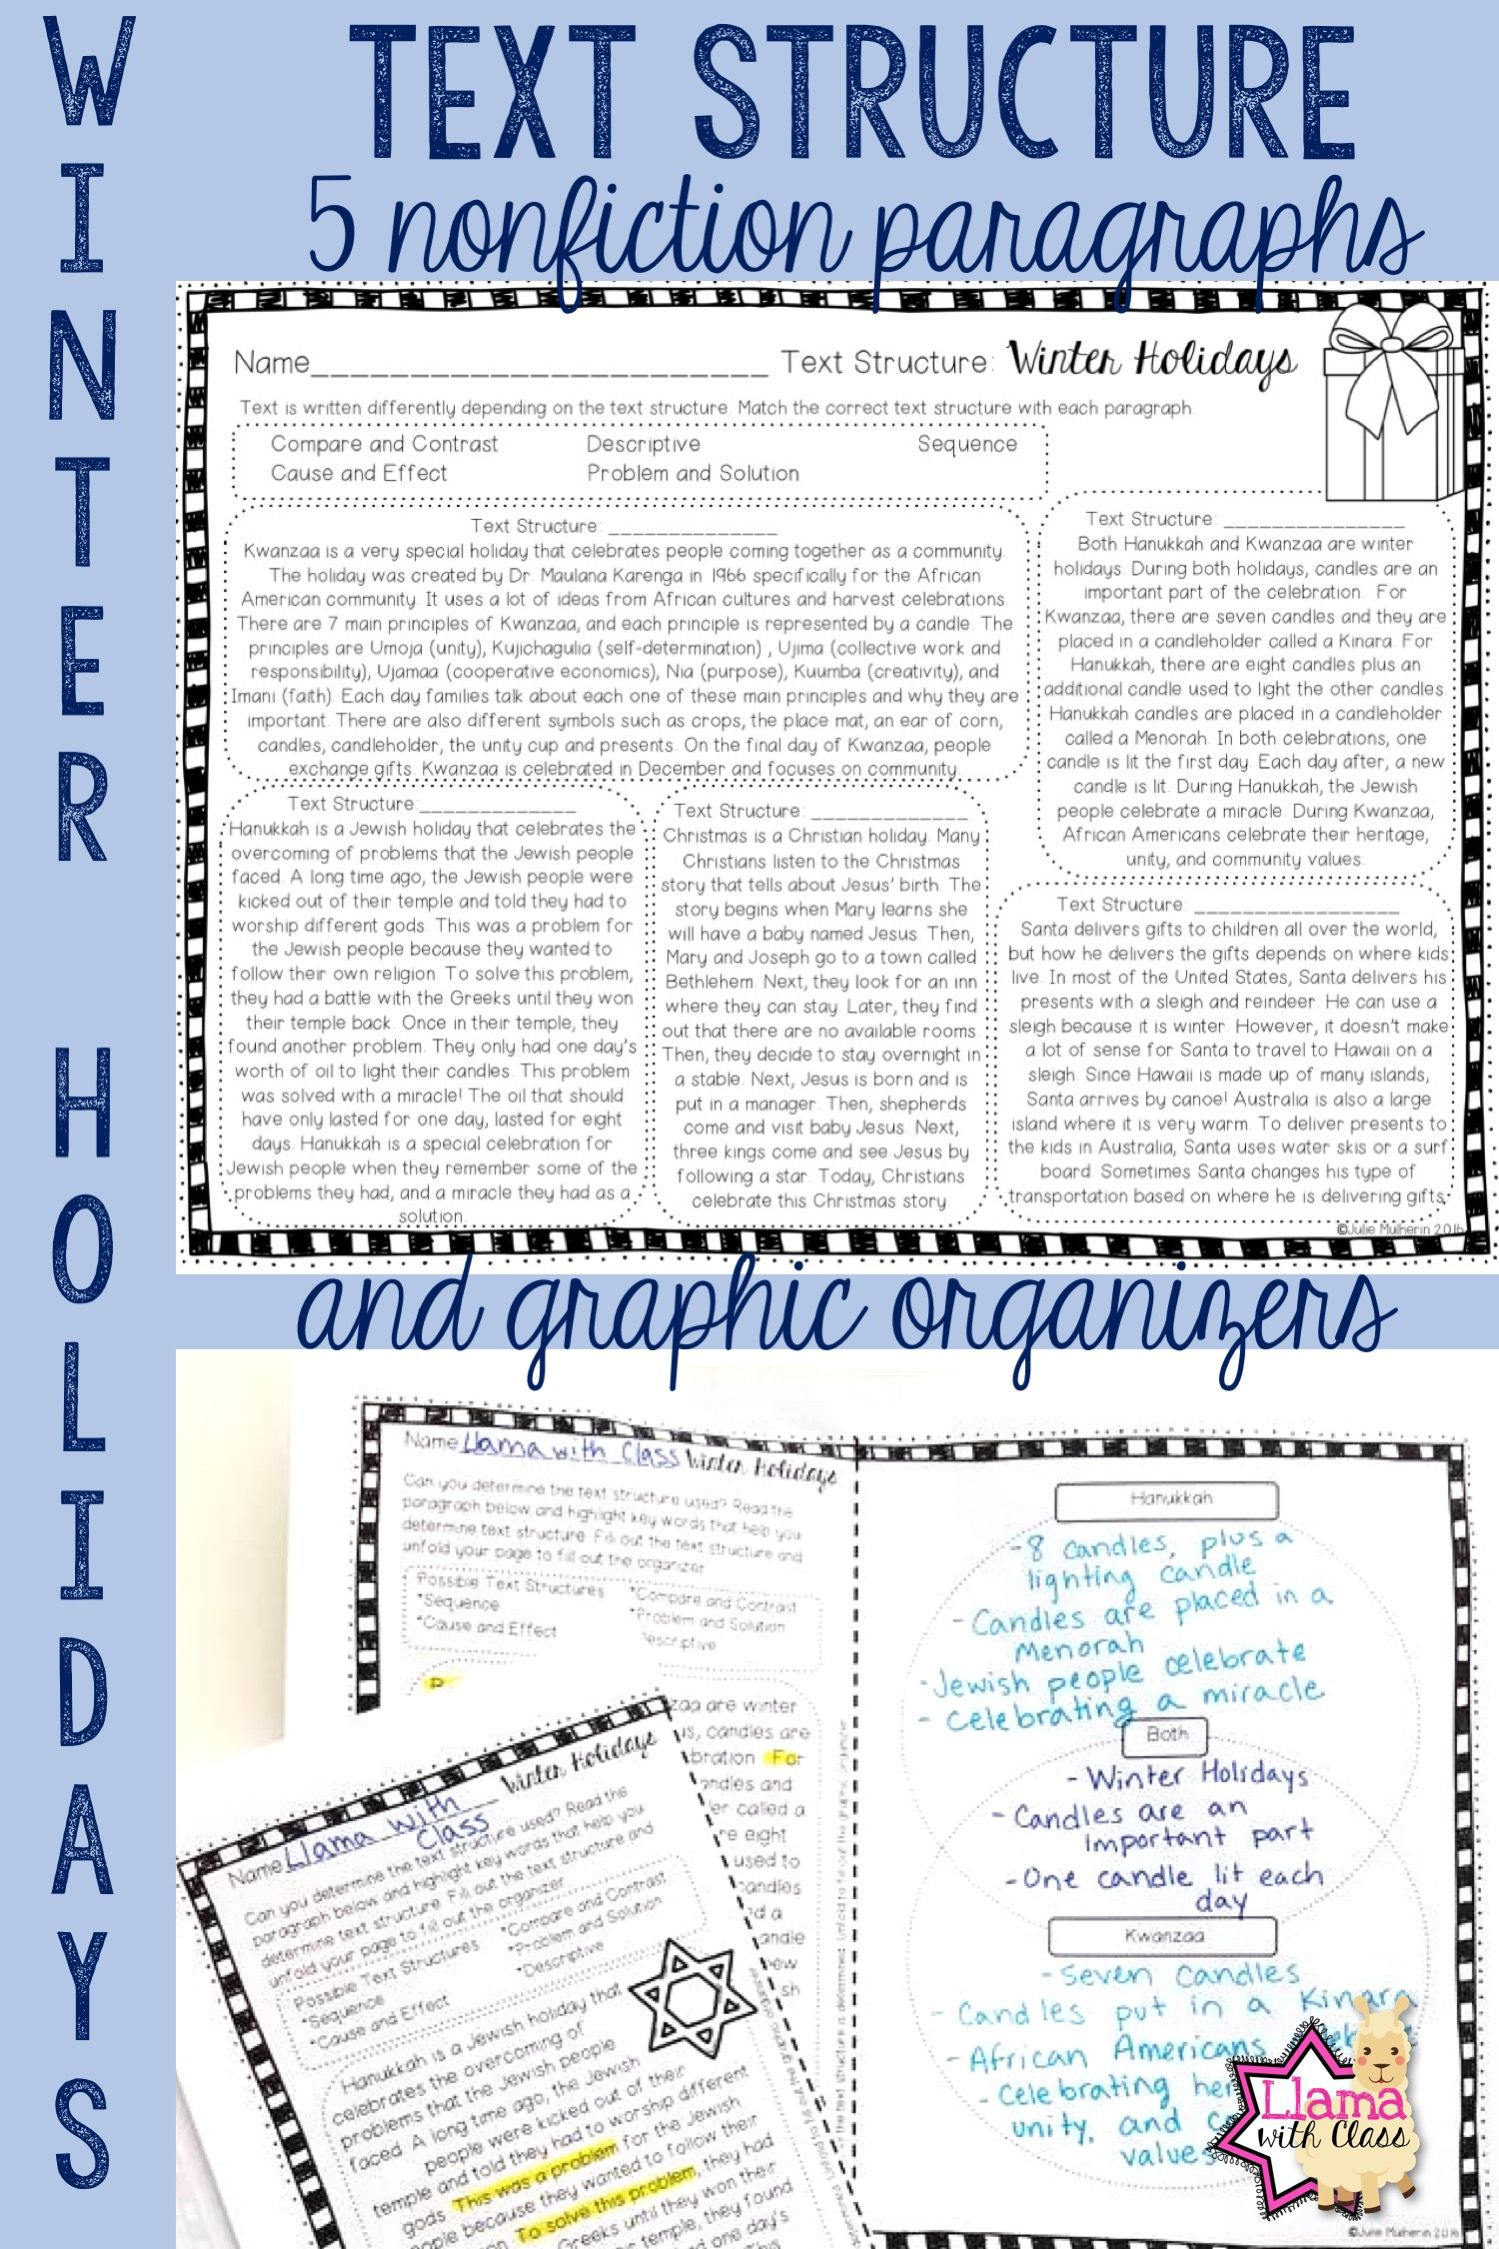 A Great Way To Practice Text Structure With Nonfiction